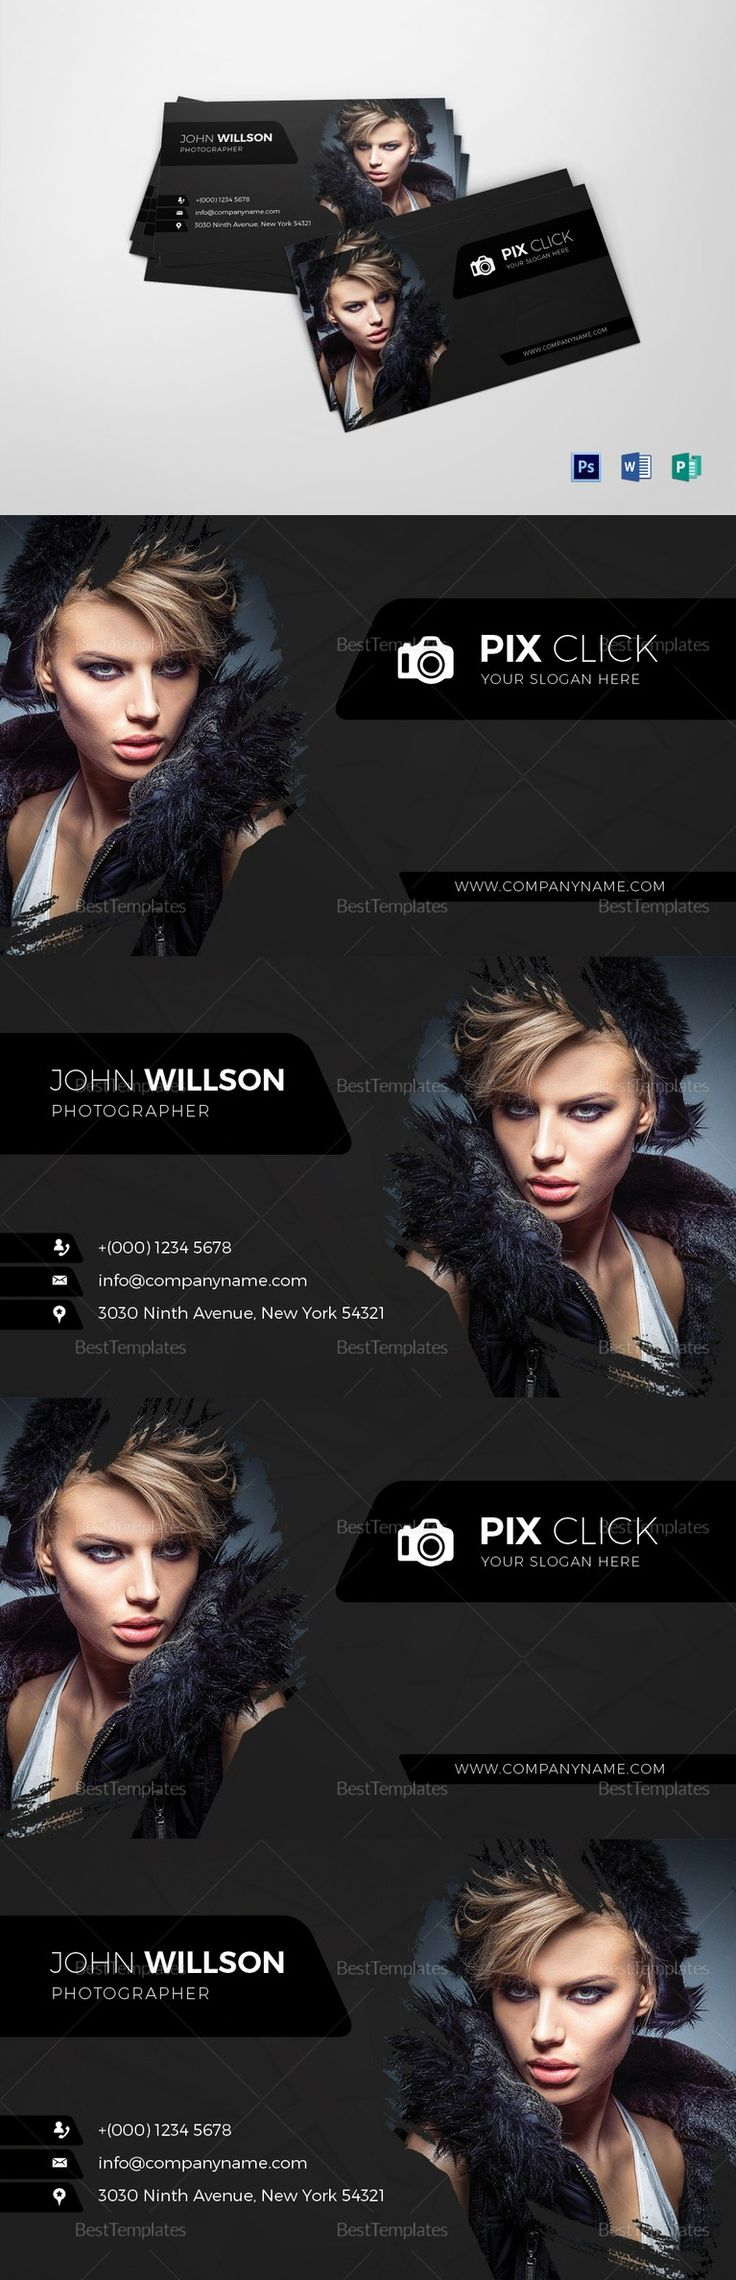 Fashion Photographer Business Card Template - $9...  Formats Included : MS Word, Photoshop, Publisher... File Size : 3.75x2.25 Inchs